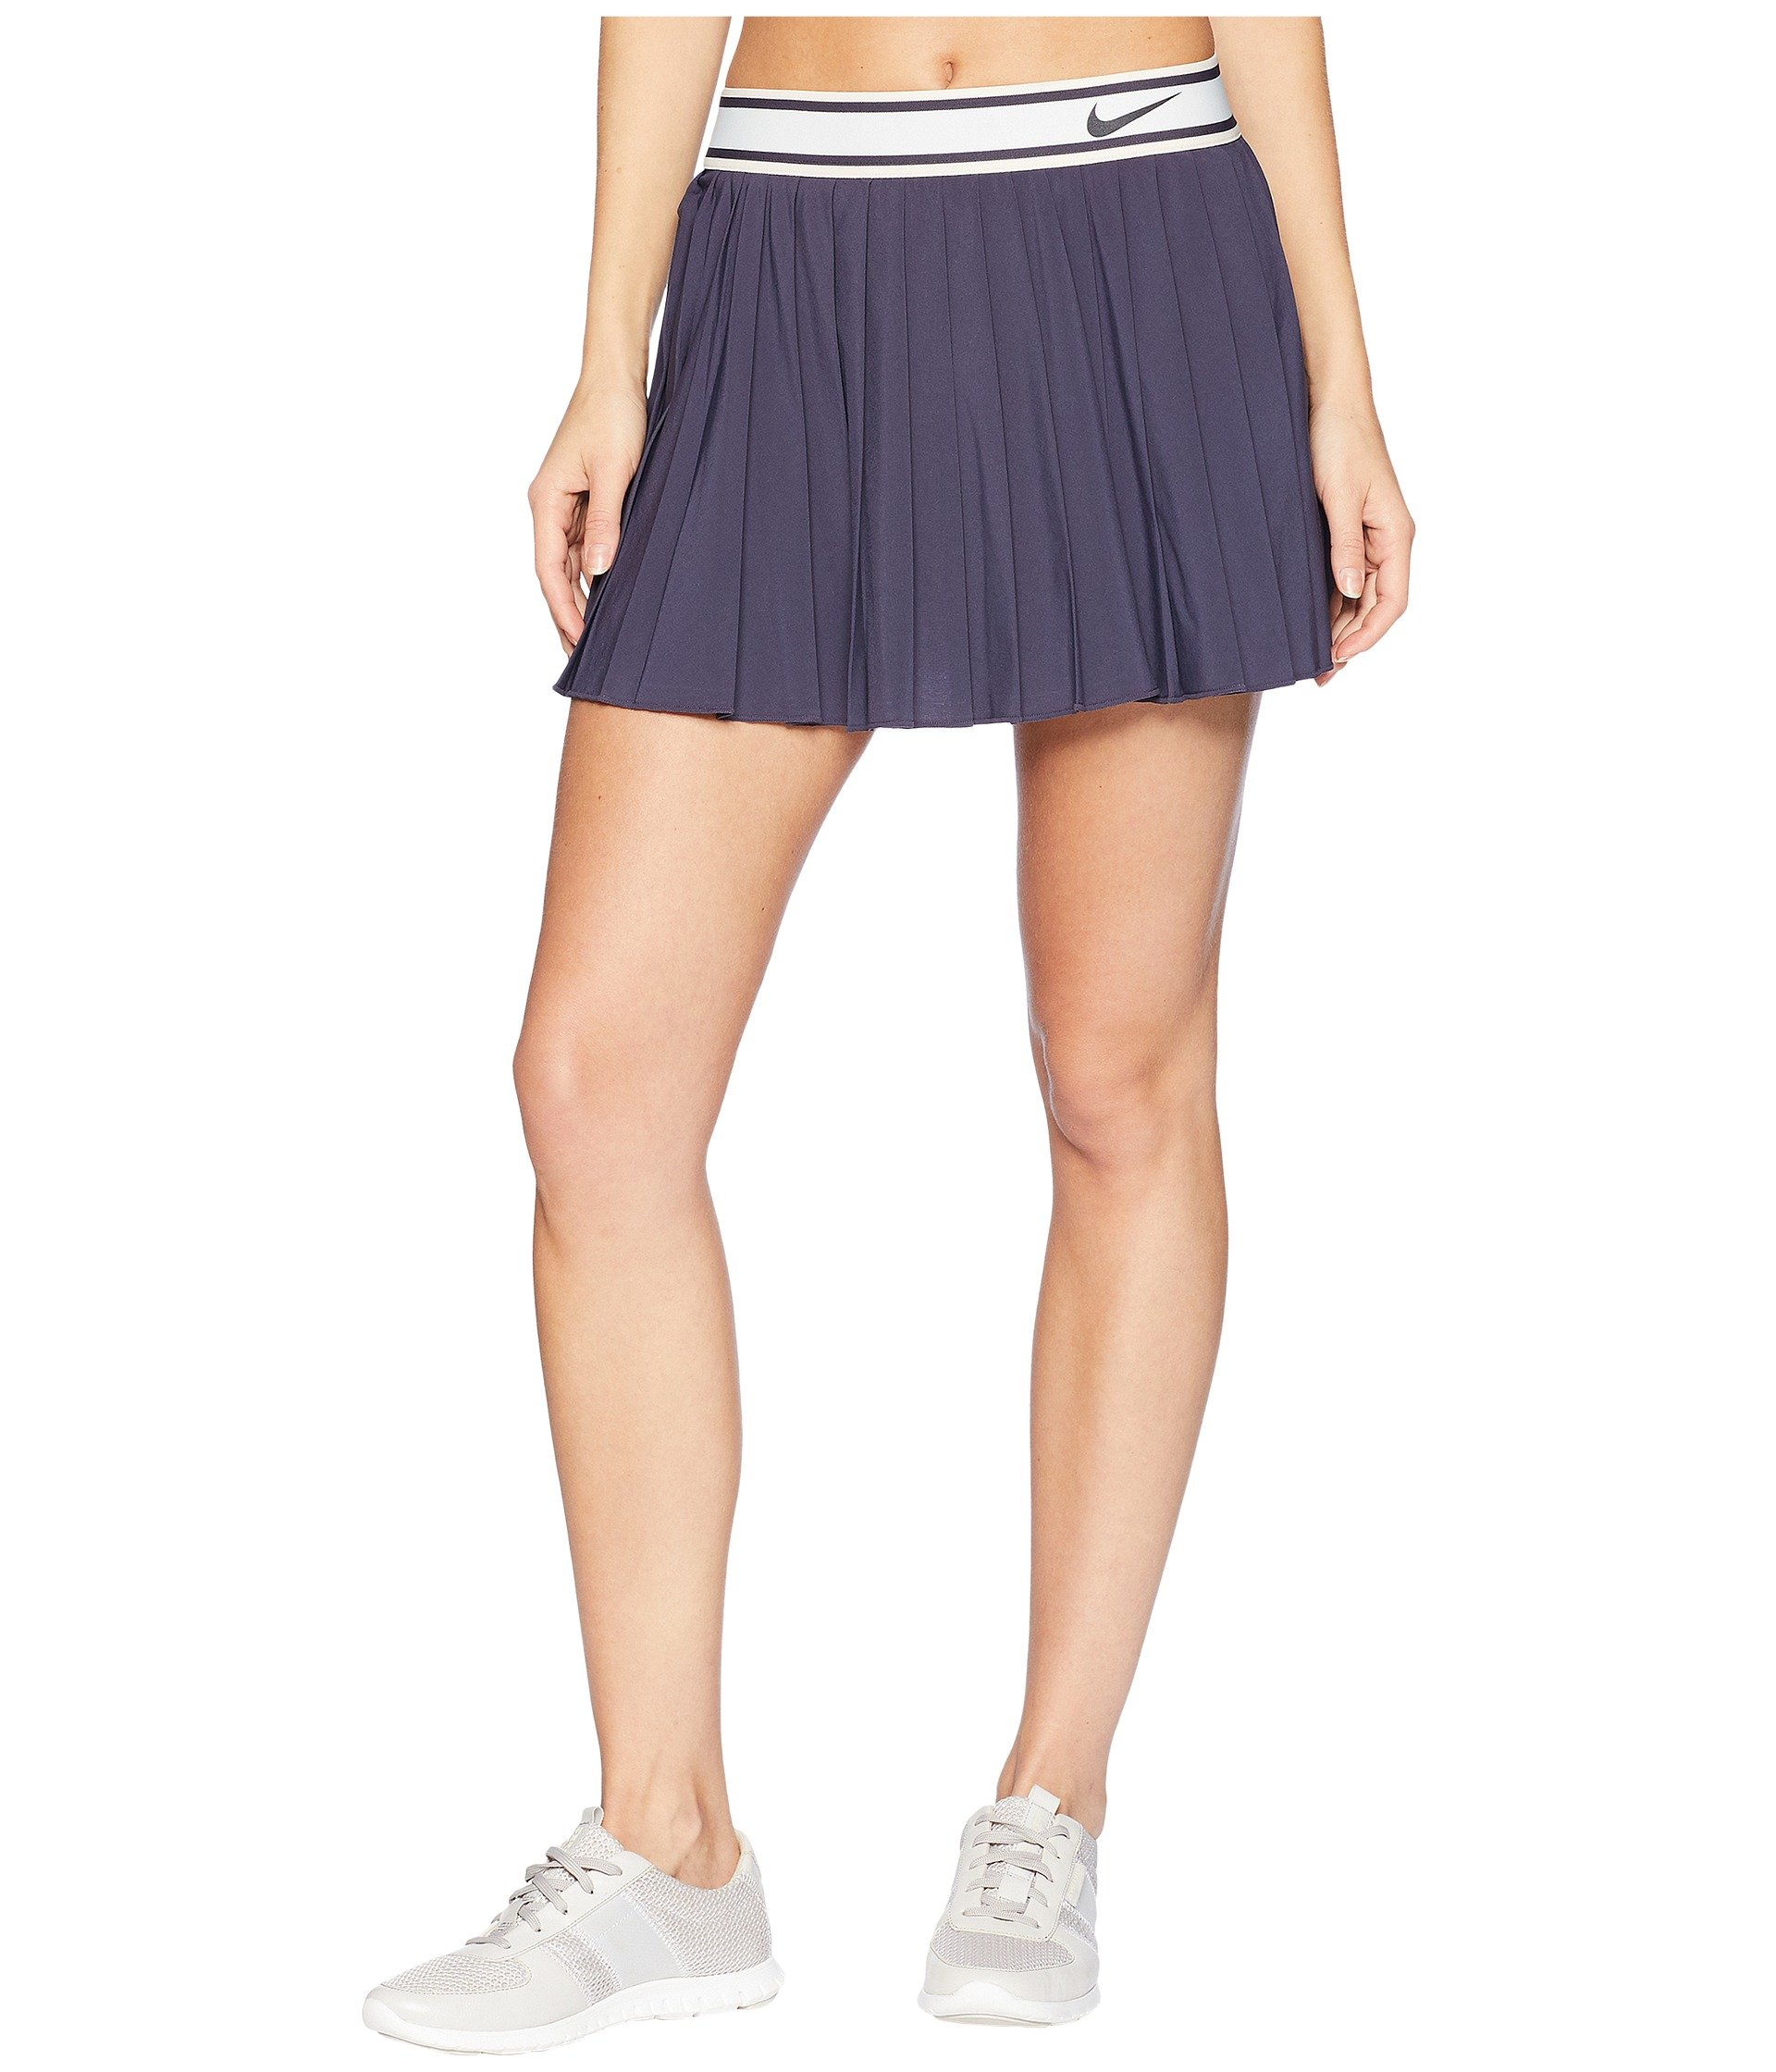 Nike Women's Court Victory Skirt Gridiron/Gridiron X-Large